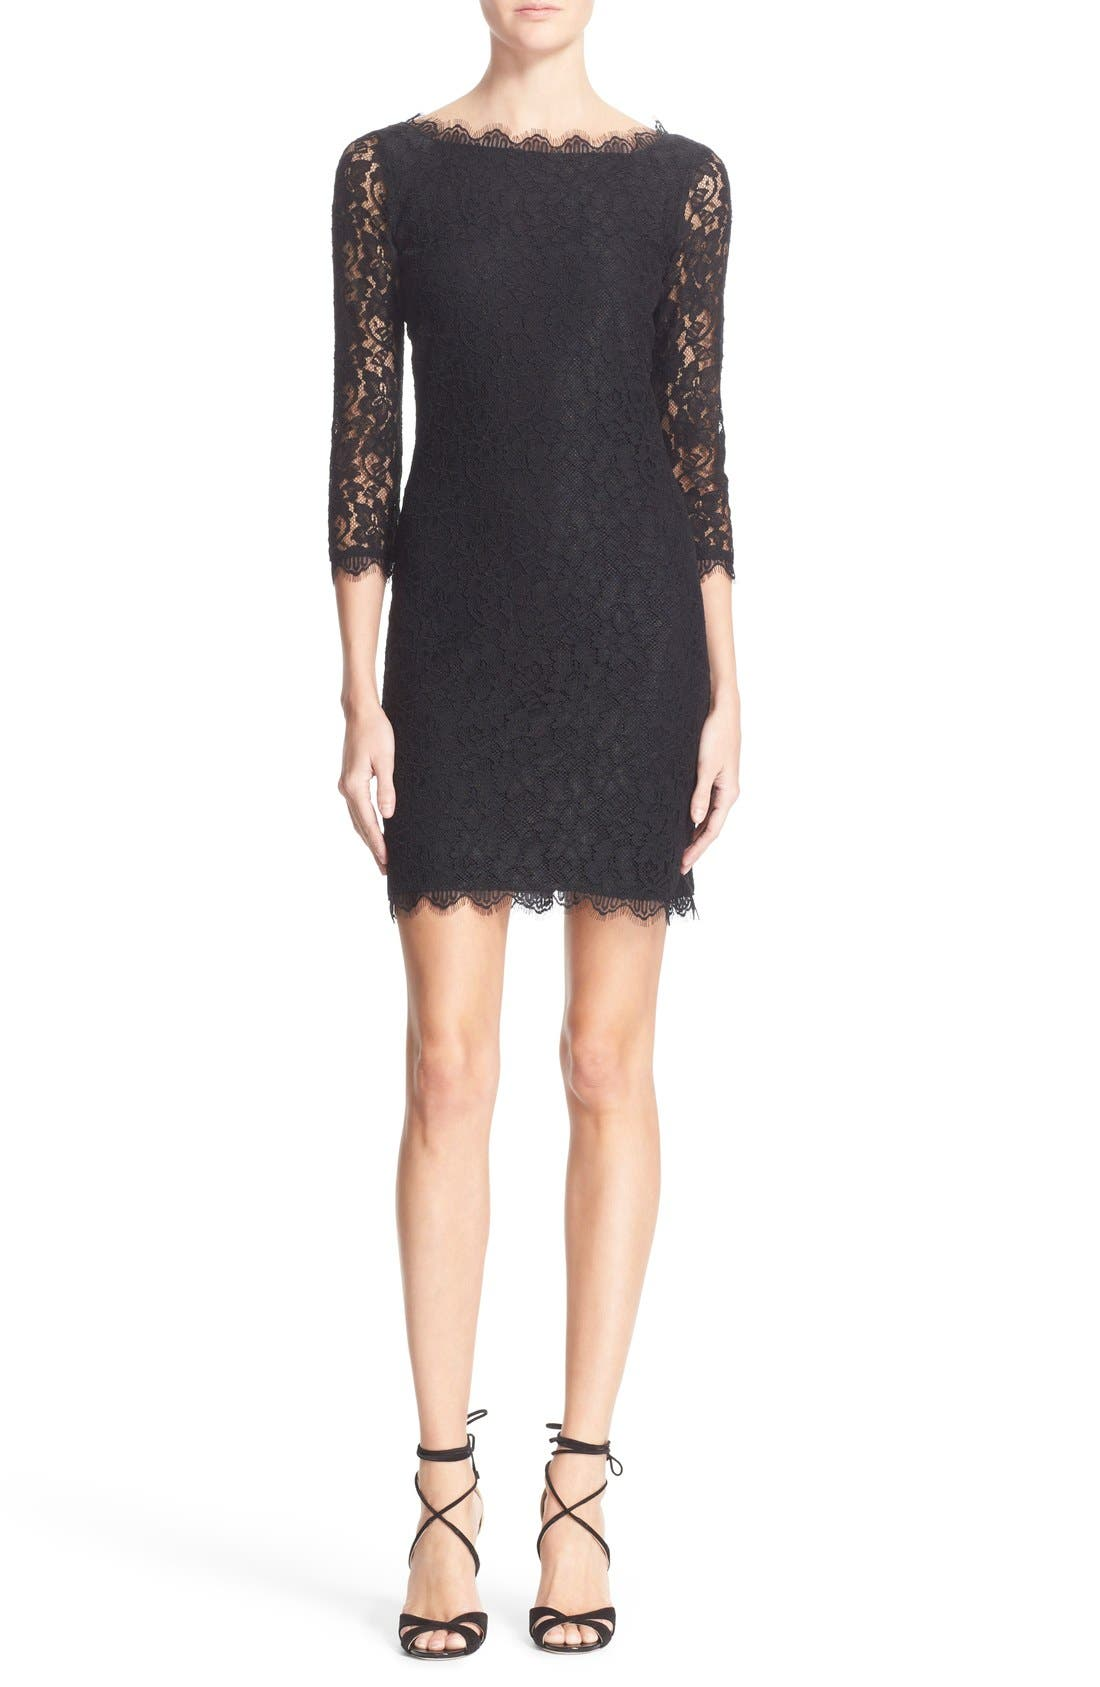 Main Image - Diane von Furstenberg 'Zarita' Lace Sheath Dress